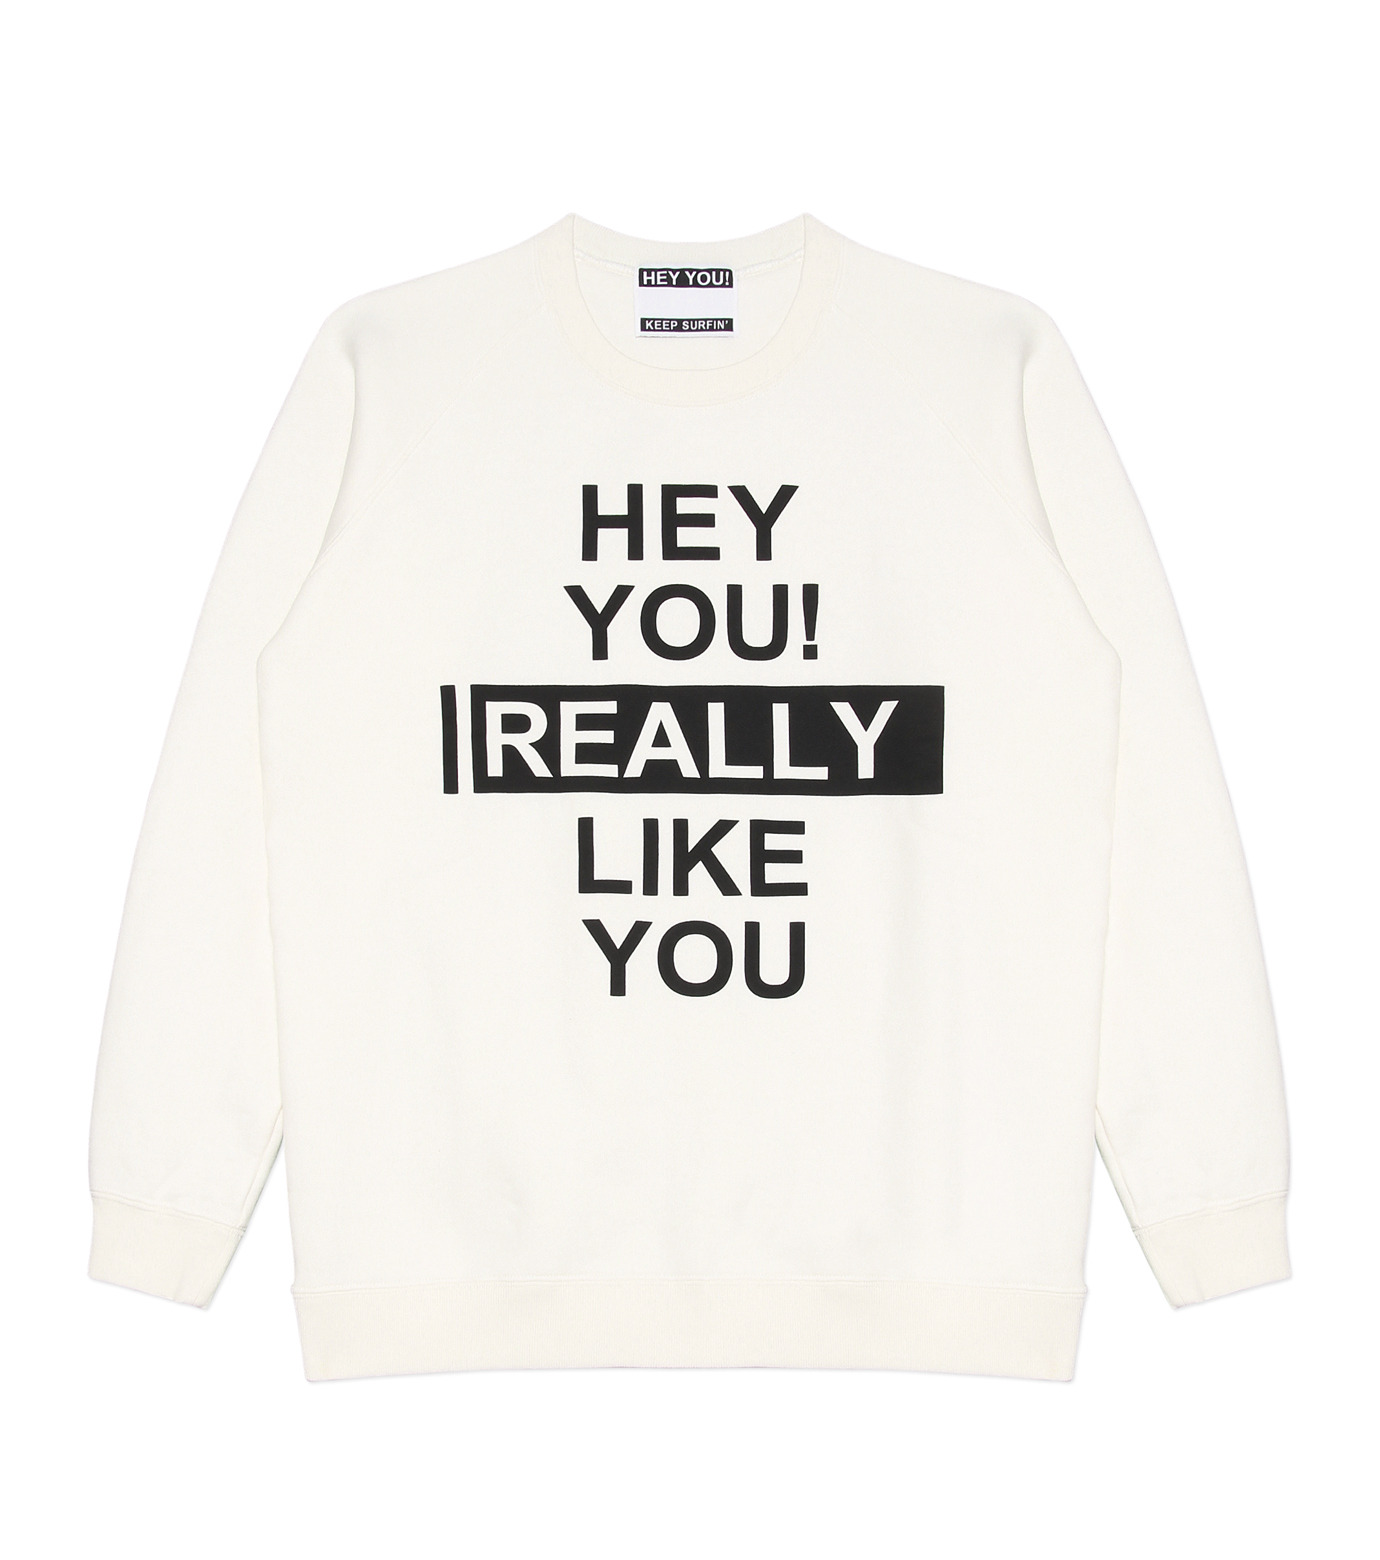 HEY YOU !(ヘイユウ)のHEY YOU LIKE YOU-WHITE(カットソー/cut and sewn)-18S92003-4 拡大詳細画像1